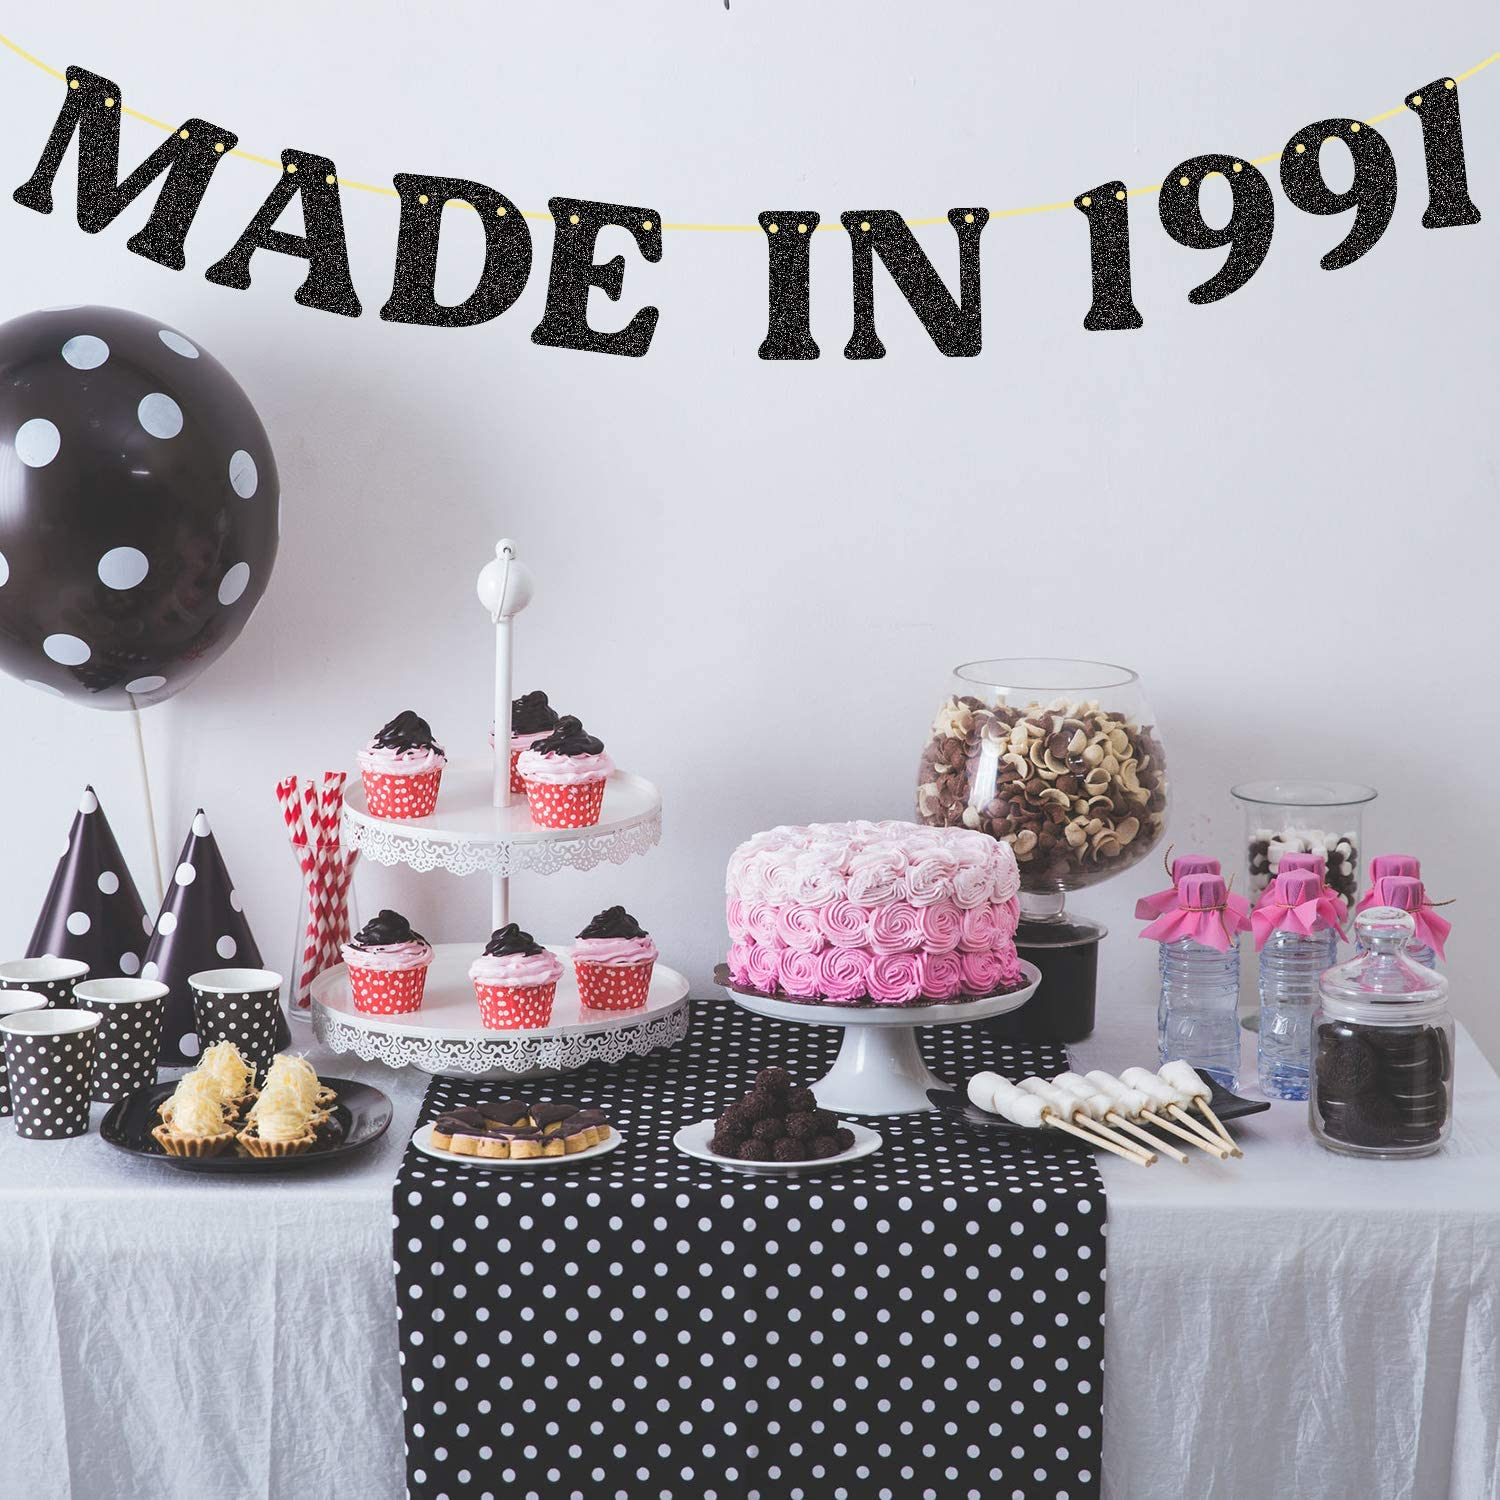 20th Birthday Decorations No DIY Made in 20 Banner Glitter Cheers to 20  Years Happy Birthday Party for Indoor/Outdoor Black